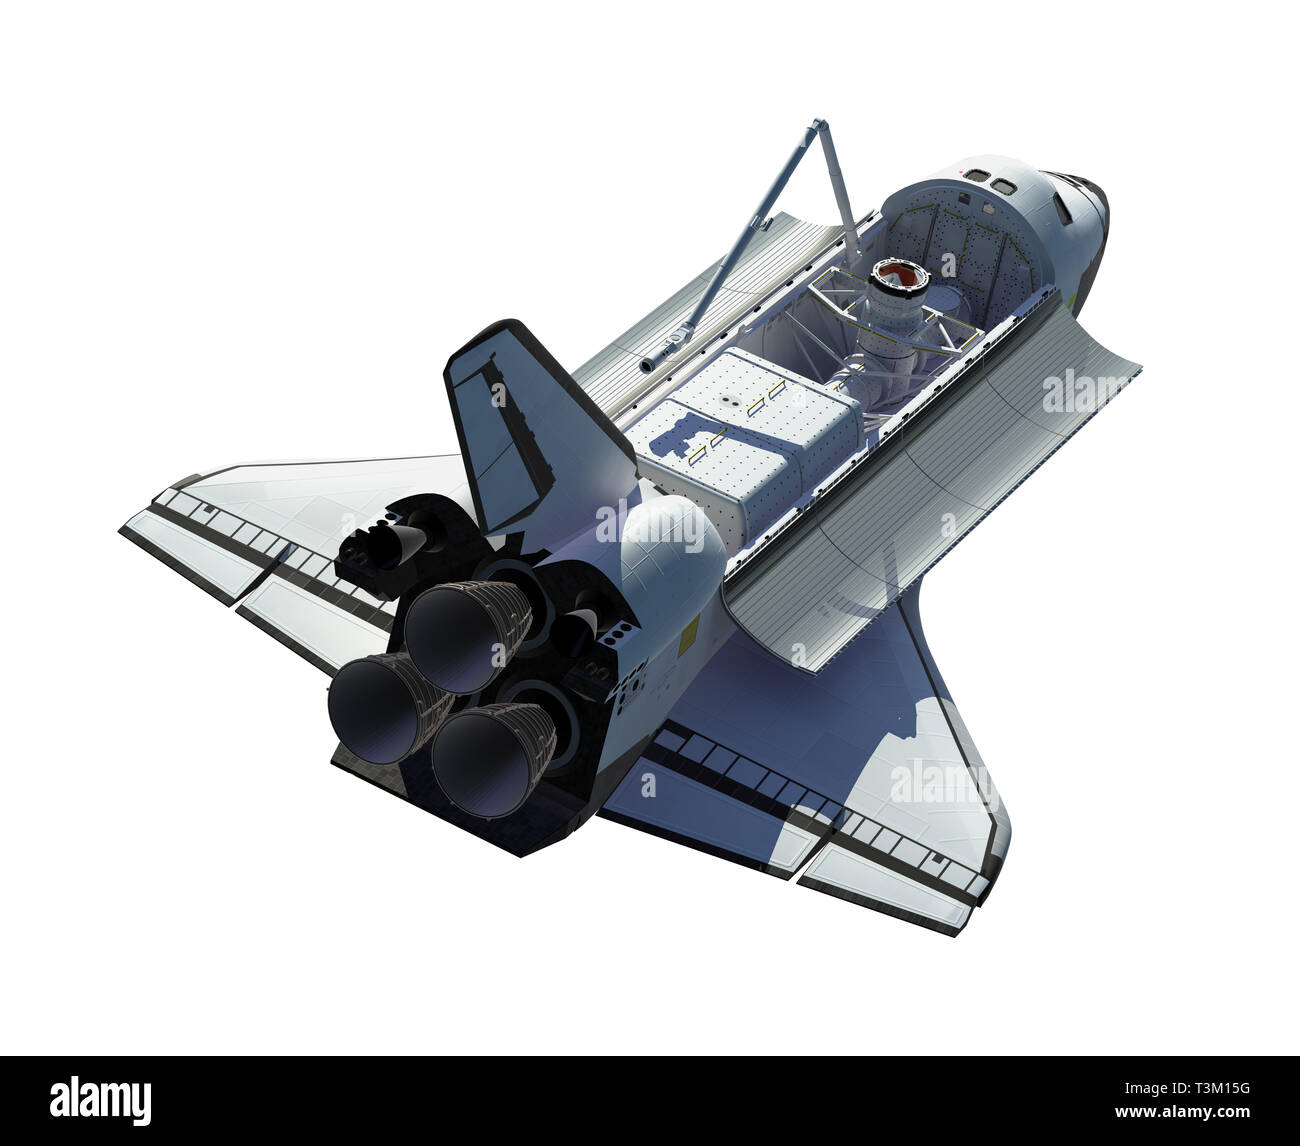 Space Shuttle Isolated On White Background. 3D Illustration. Stock Photo